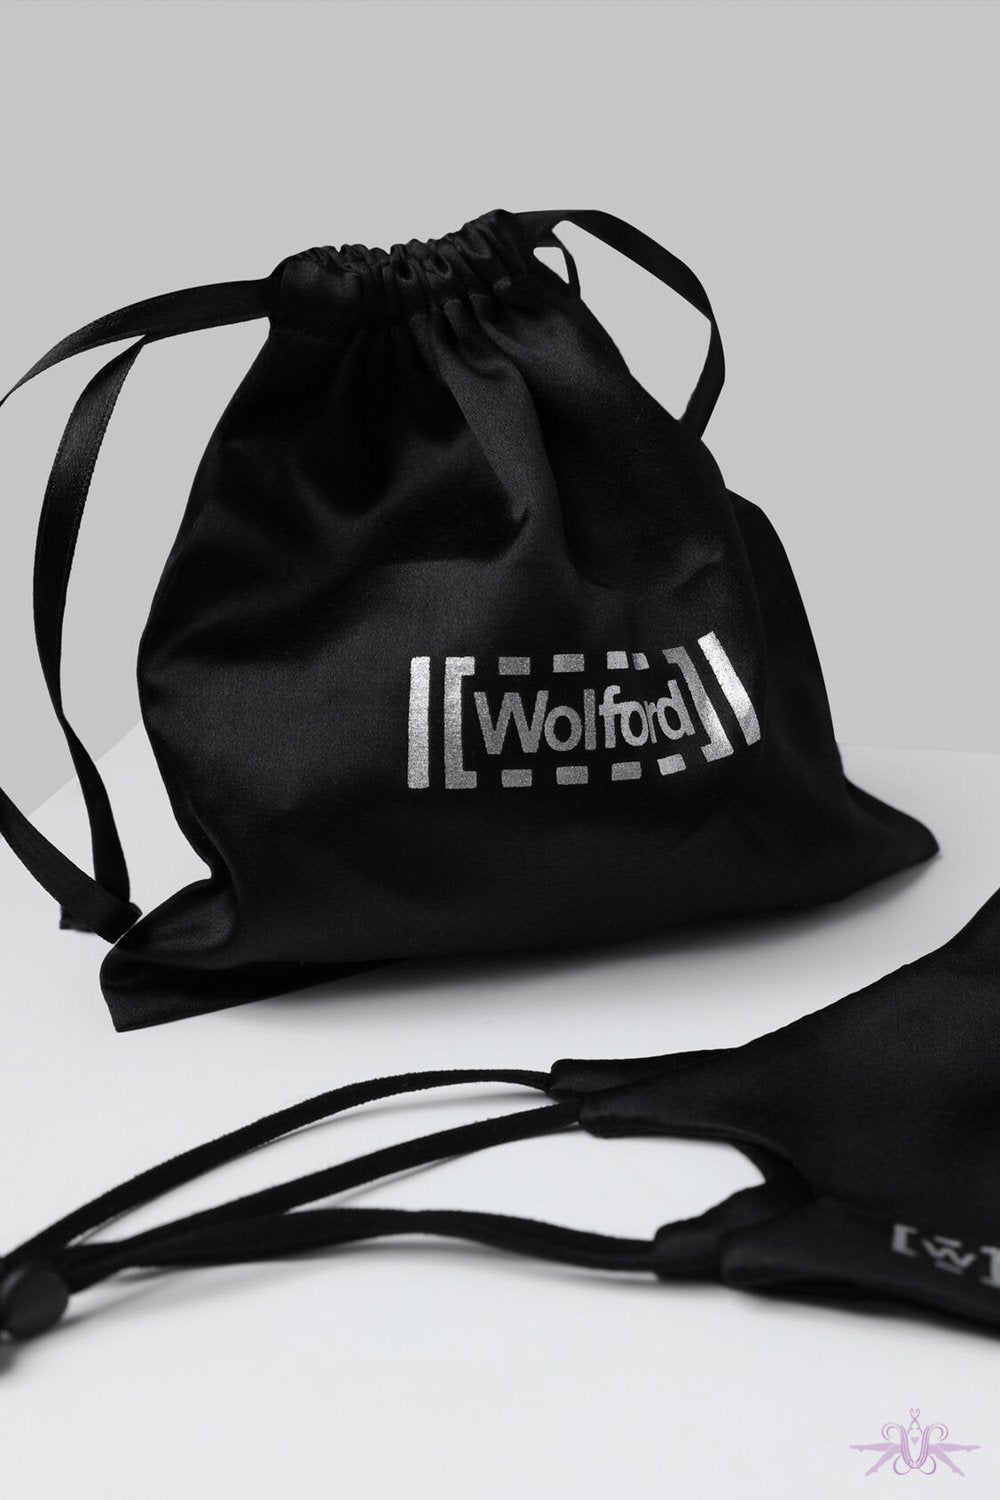 Wolford Black Silk Bag